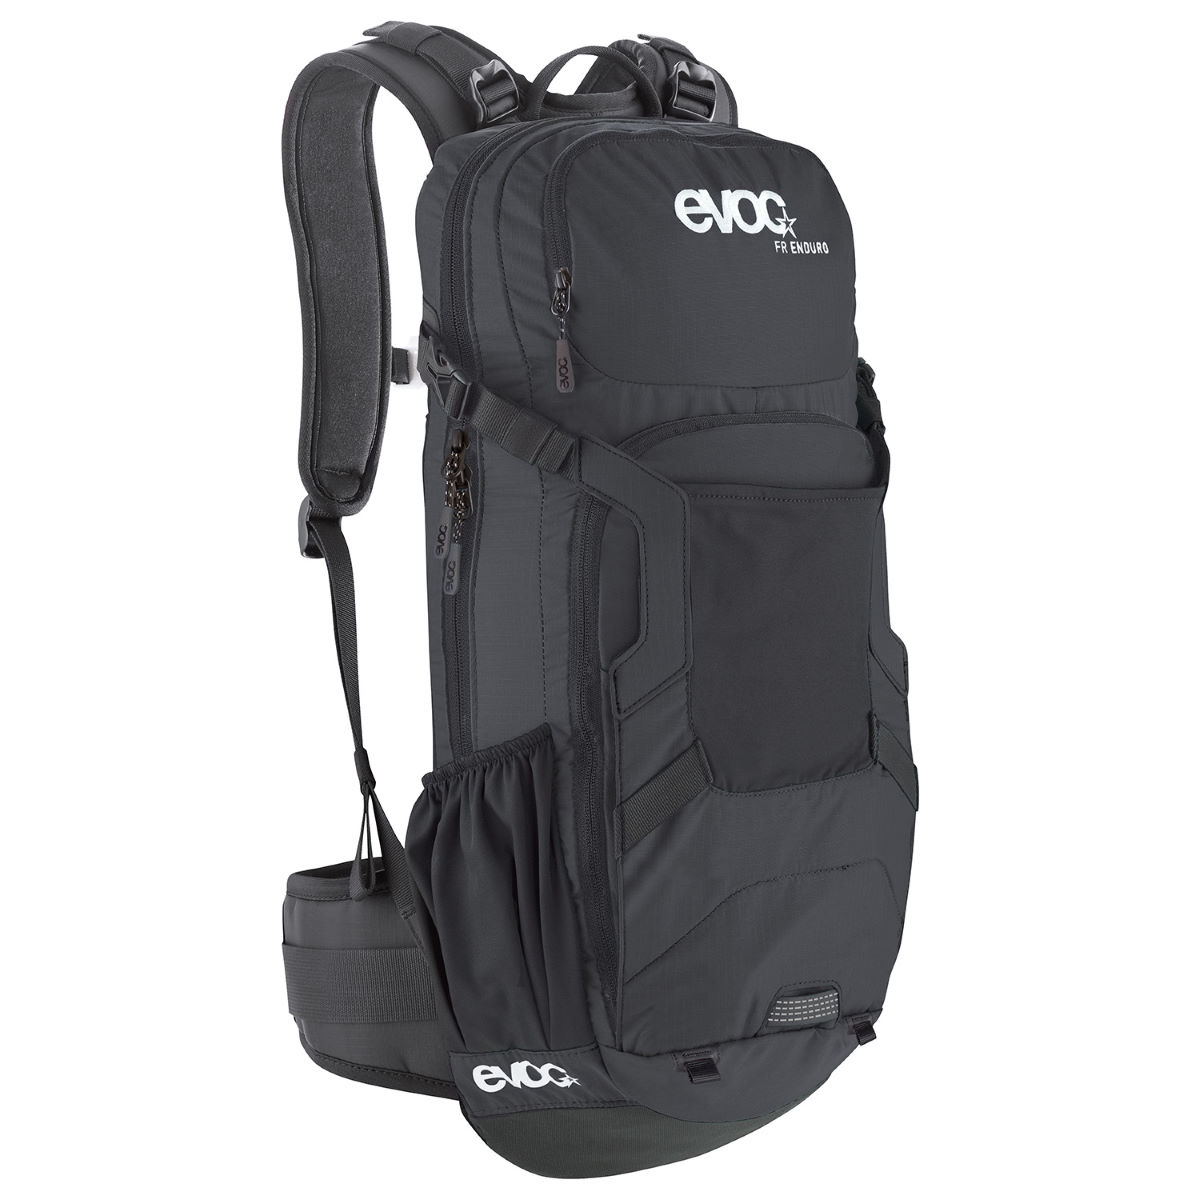 Evoc Evoc FR Enduro 16L Backpack   Rucksacks